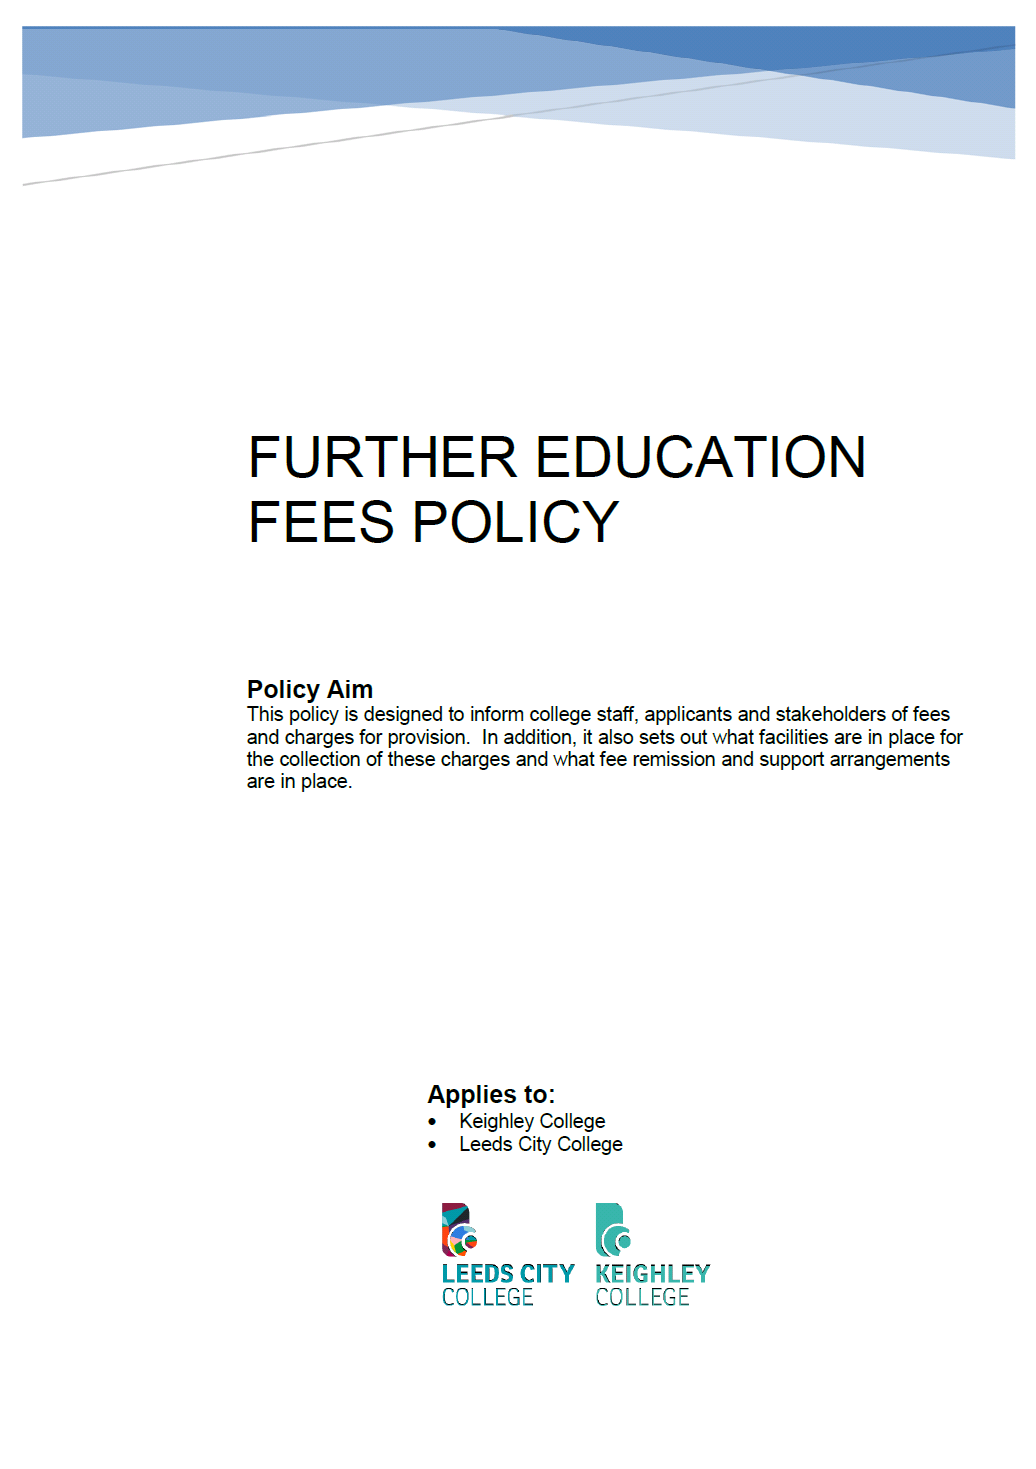 Fees Policy cover